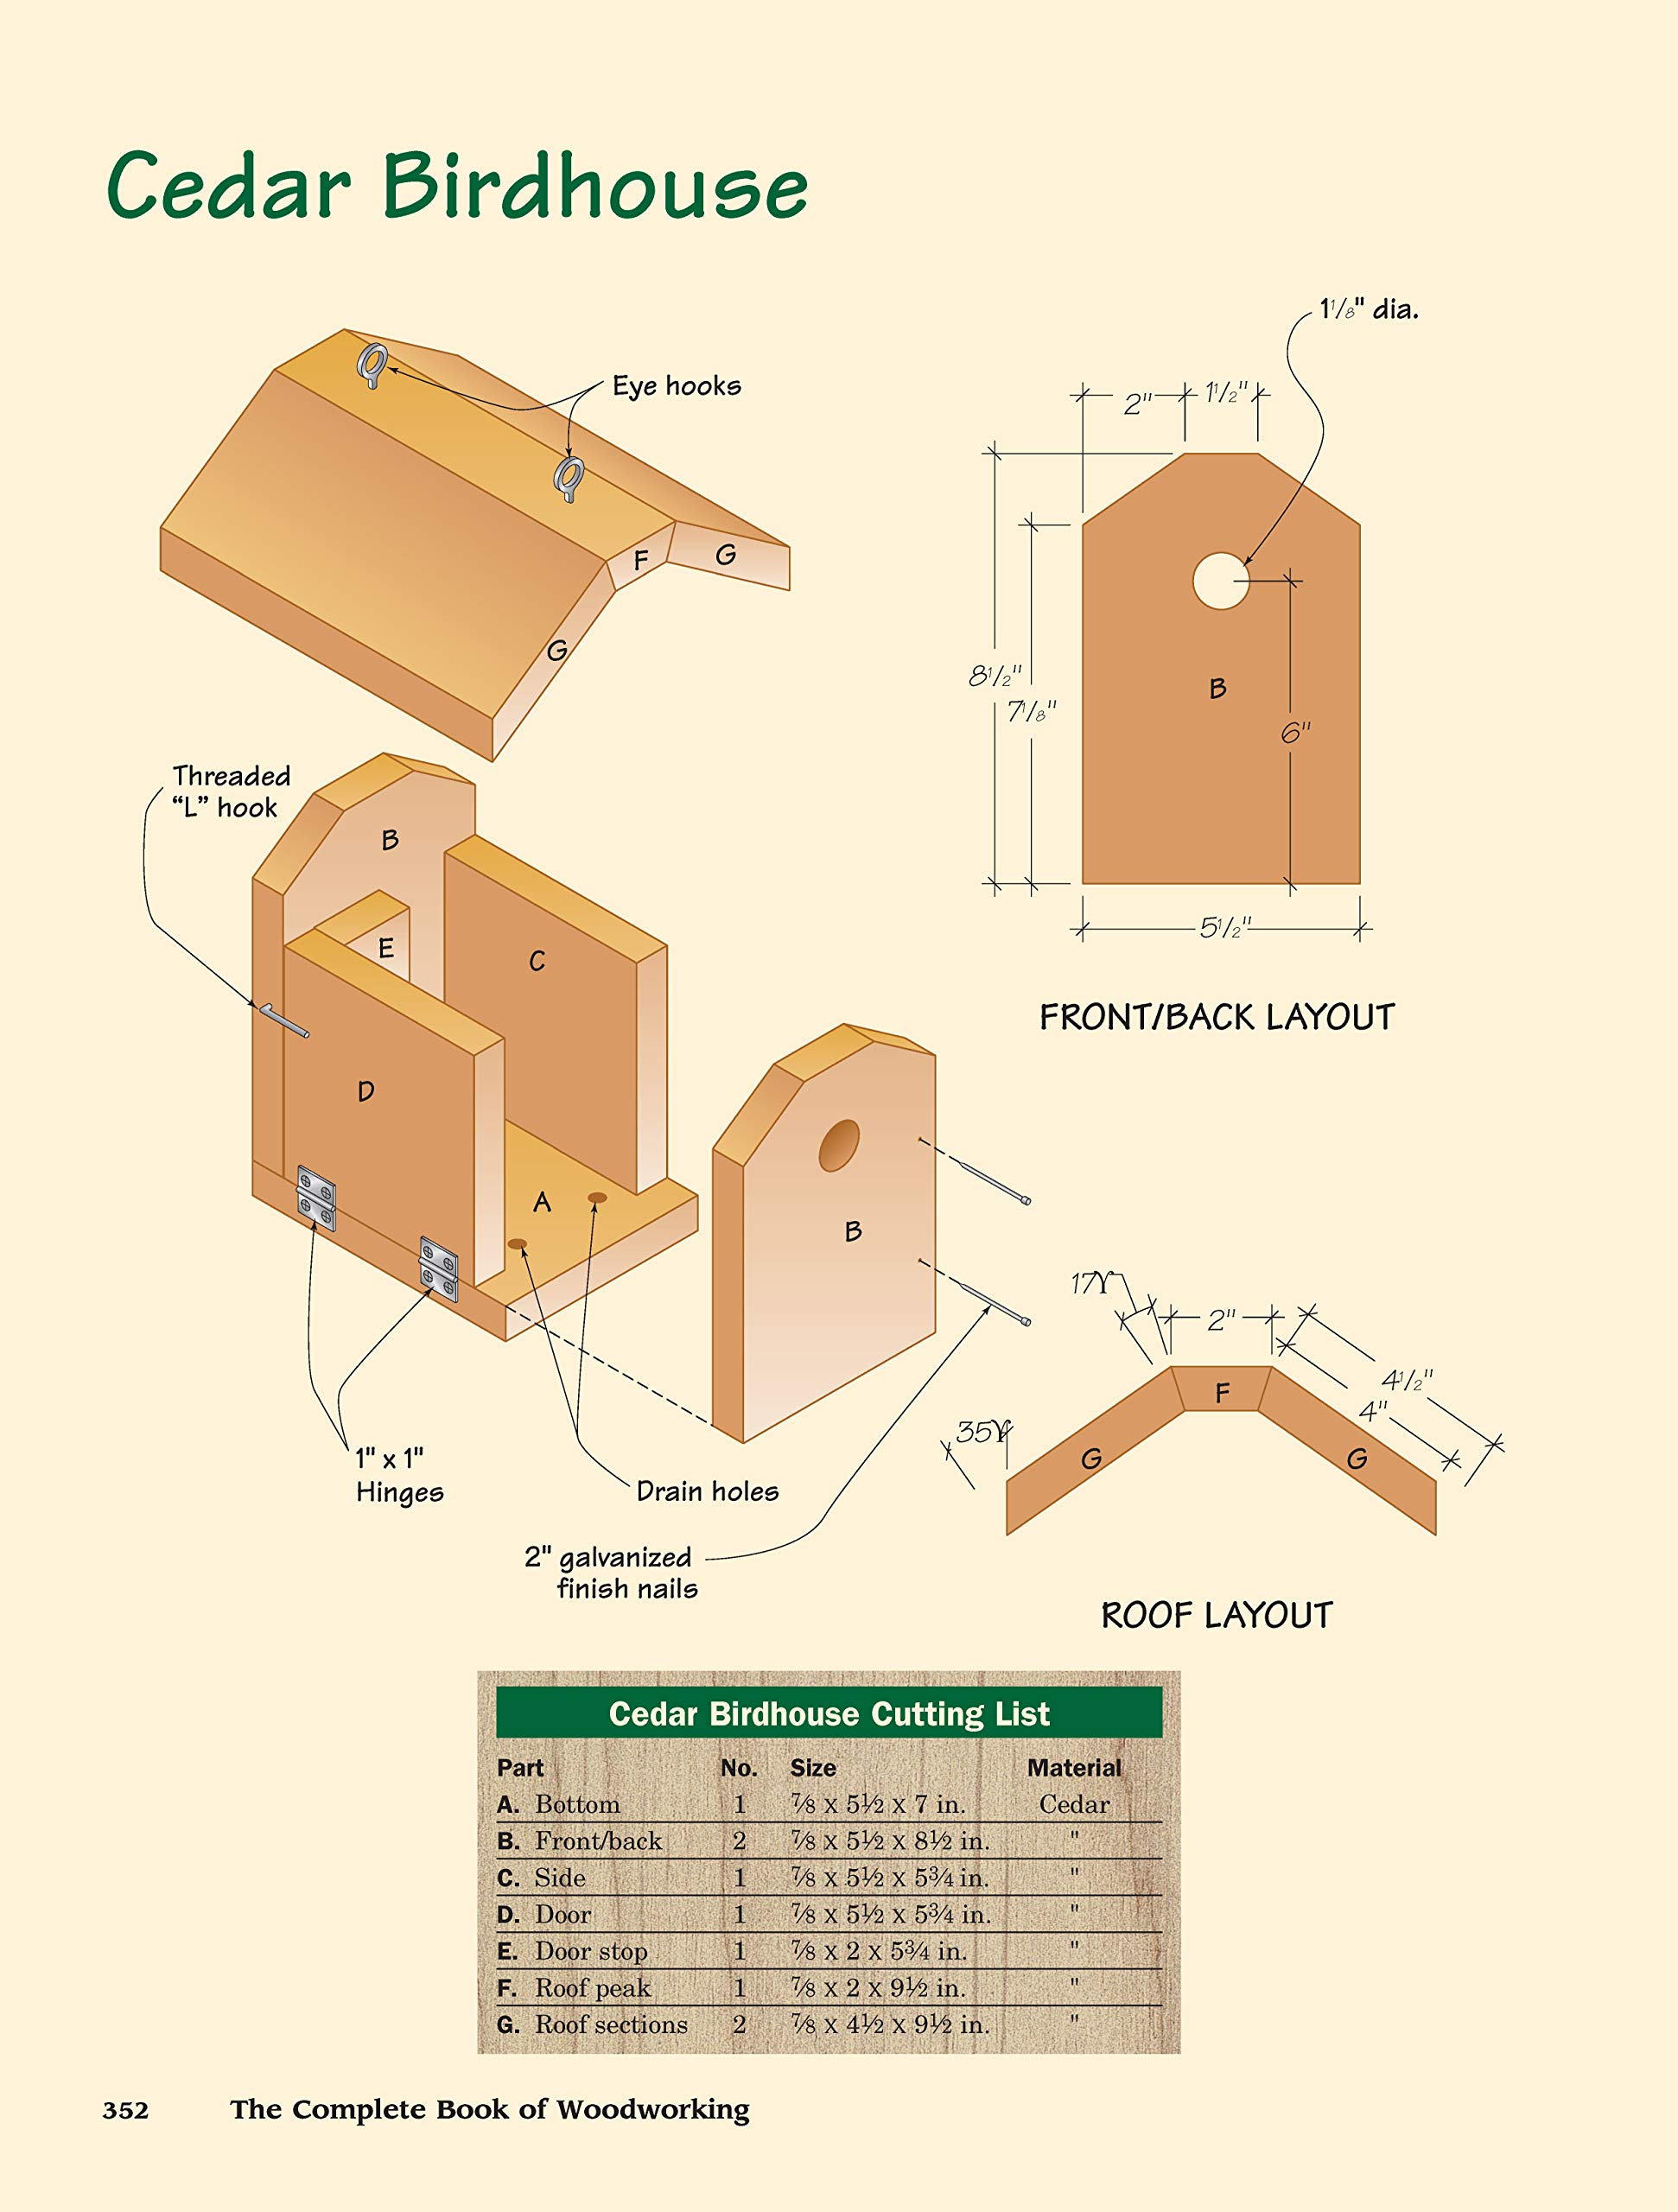 The Complete Book of Woodworking: Step-by-Step Guide to Essential Woodworking Skills, Techniques and Tips (Landauer) More Than 40 Projects with Detailed, Easy-to-Follow Plans and Over 200 Photos by Design Originals (Image #8)